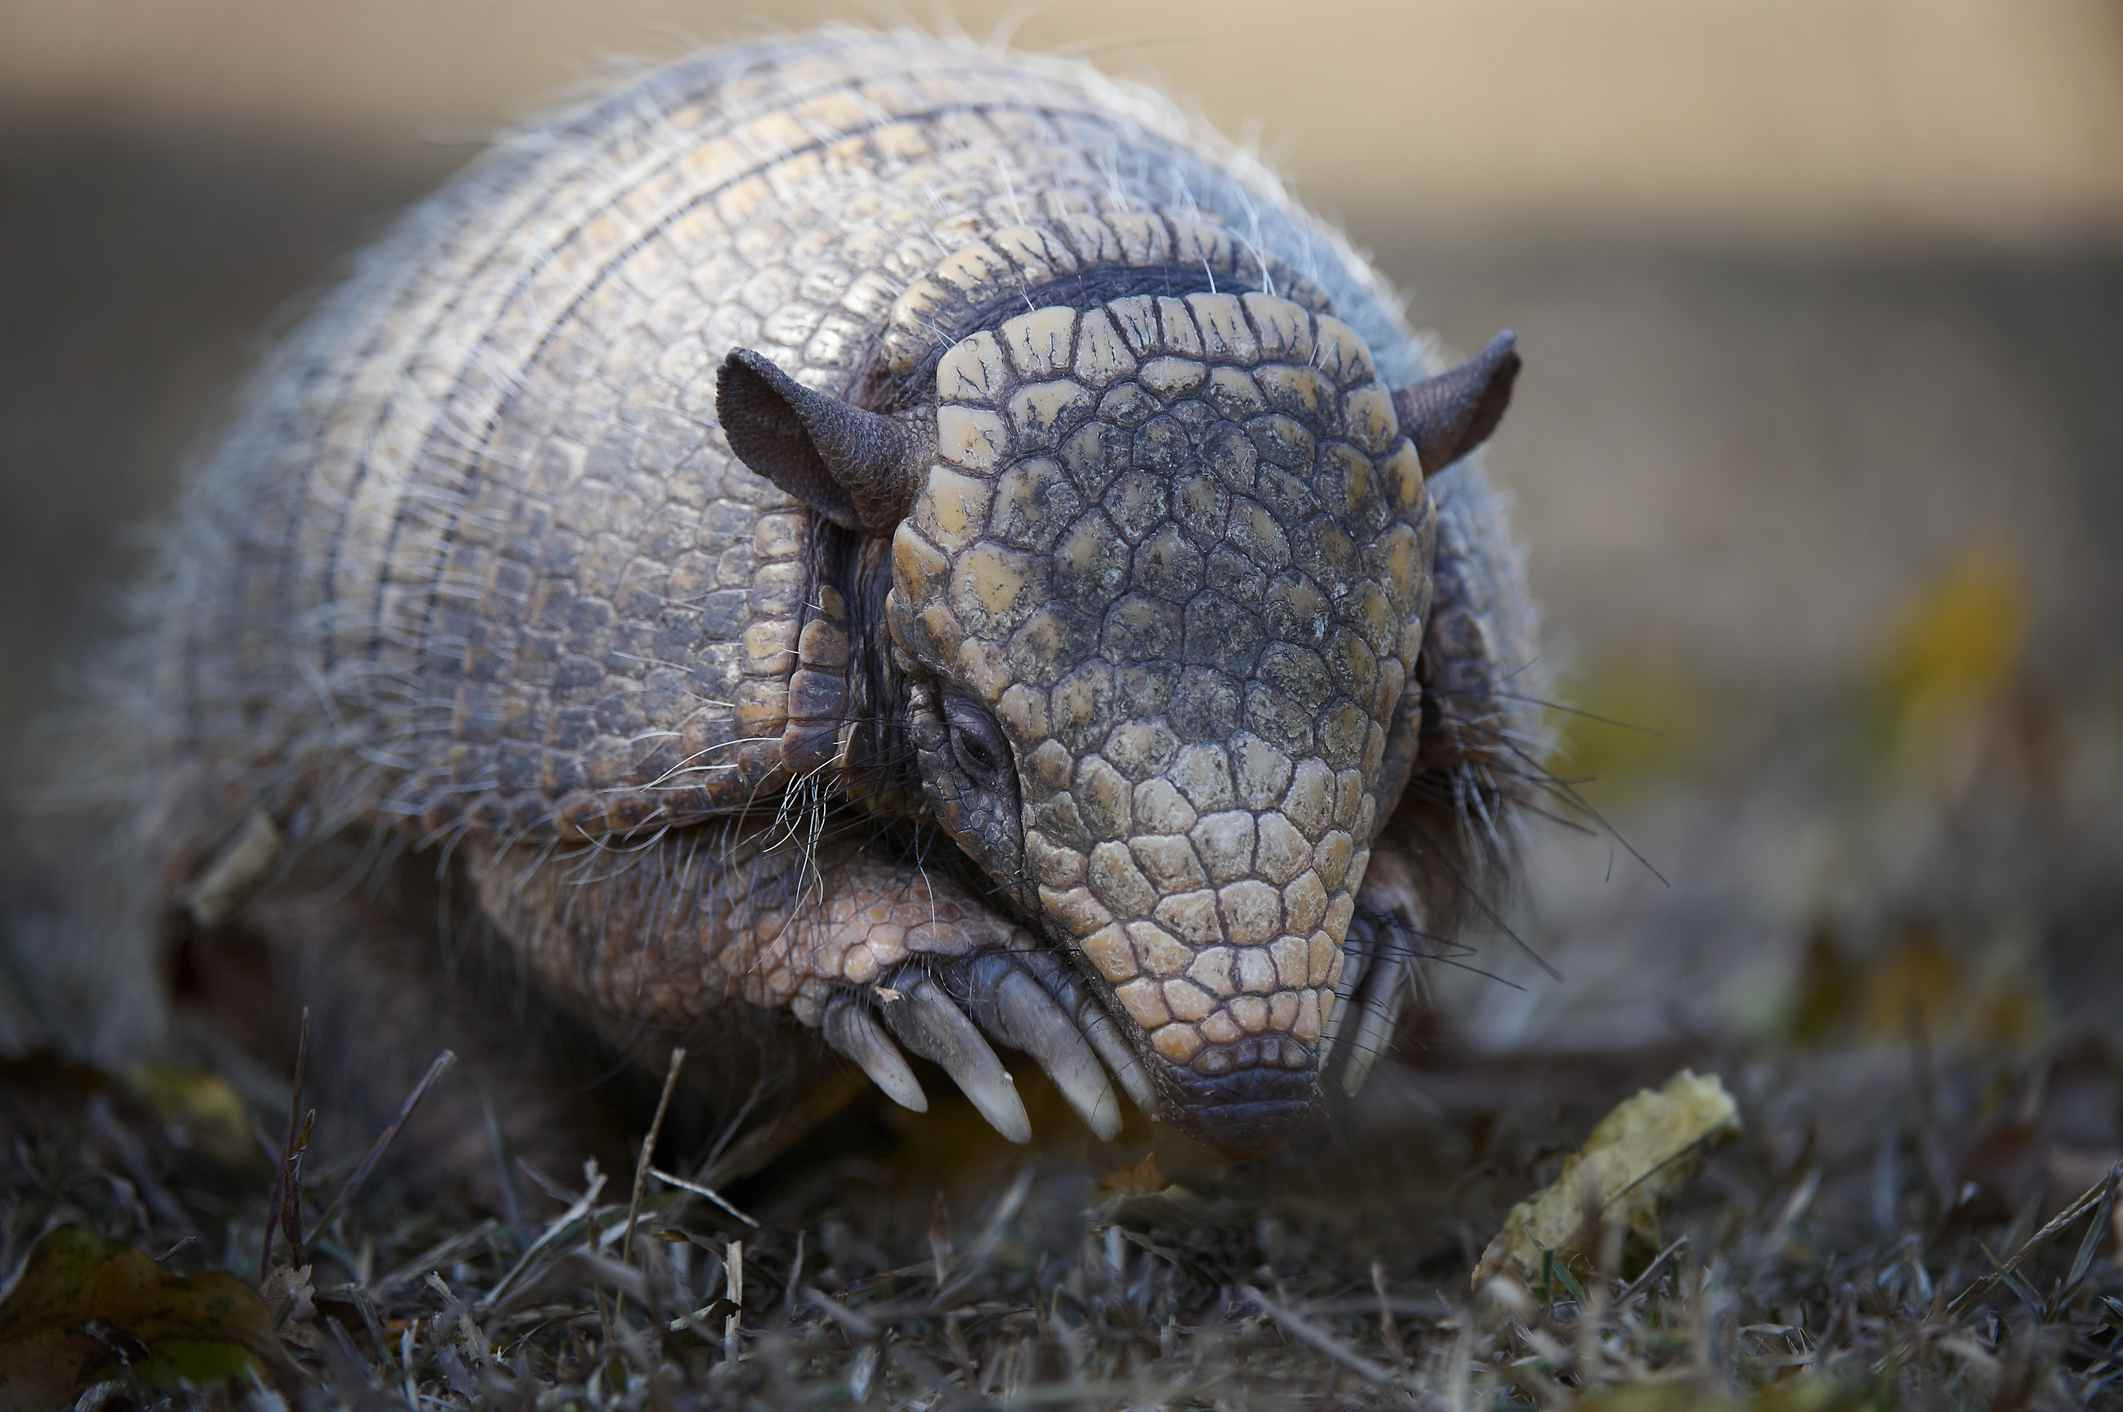 A close-up of an armadillo ready to dig for food with is long claws